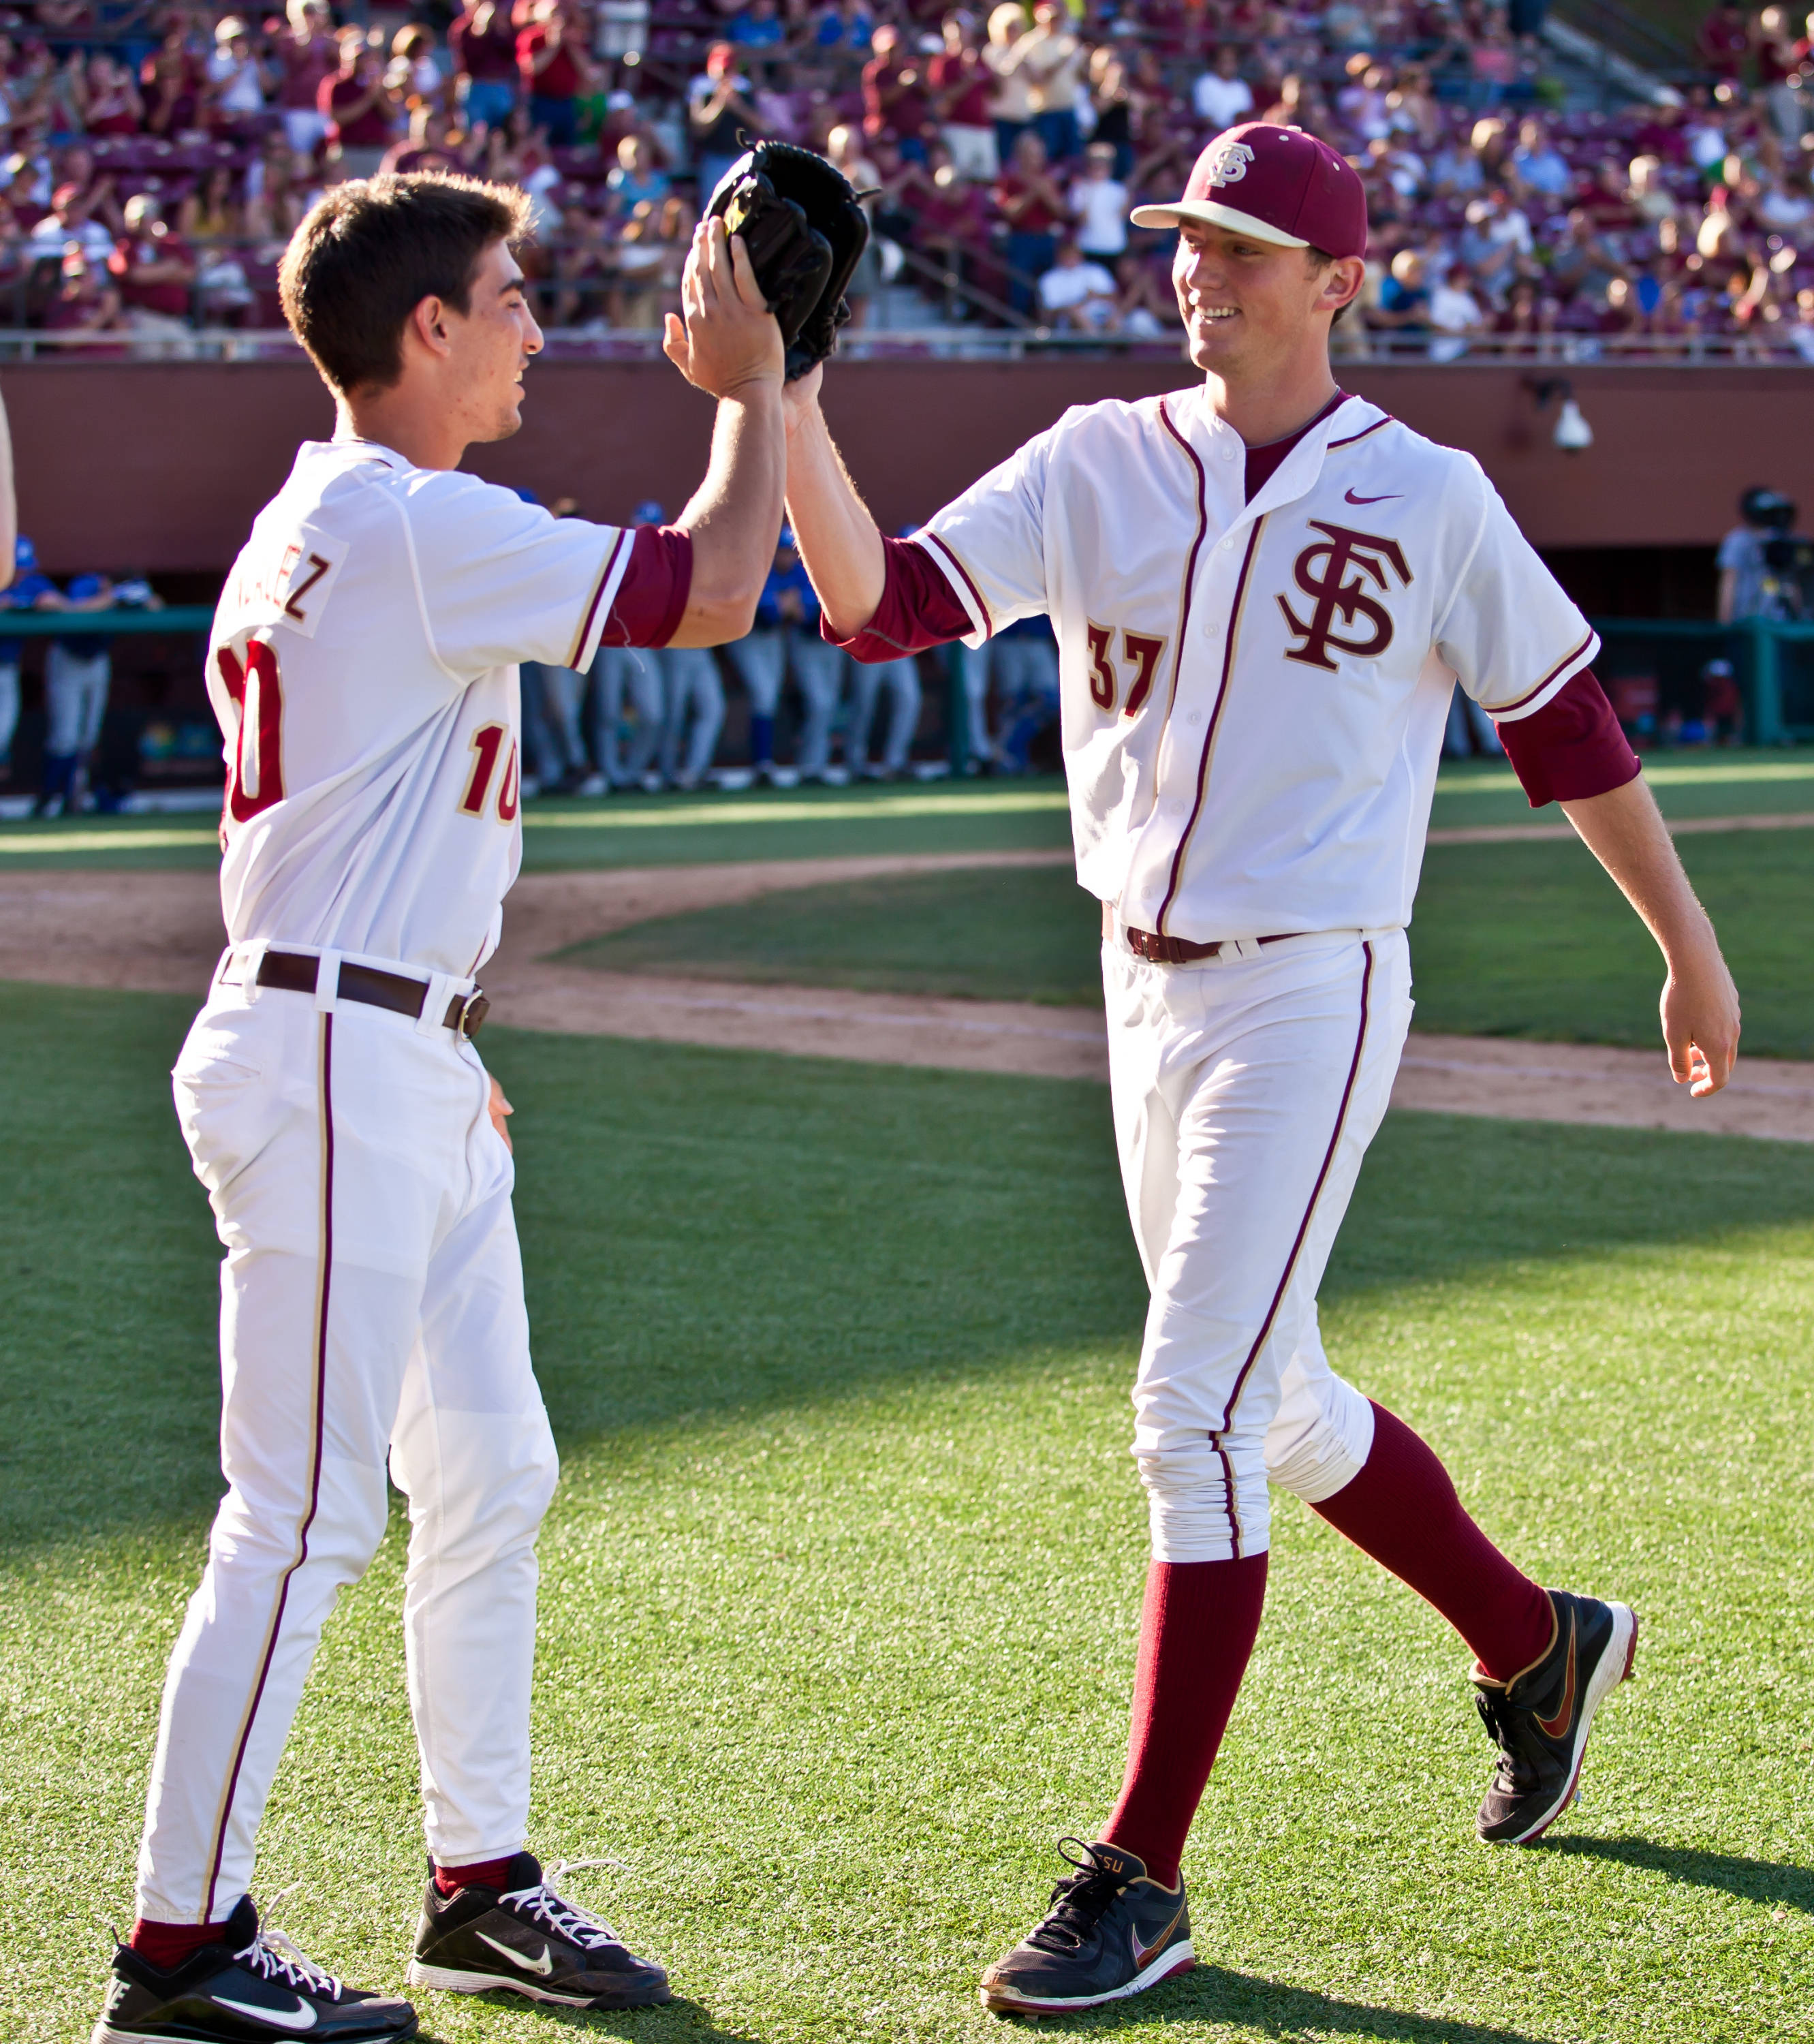 Justin Gonzalez congratulates Brandon Leibrandt on a strong performance Saturday in game one.